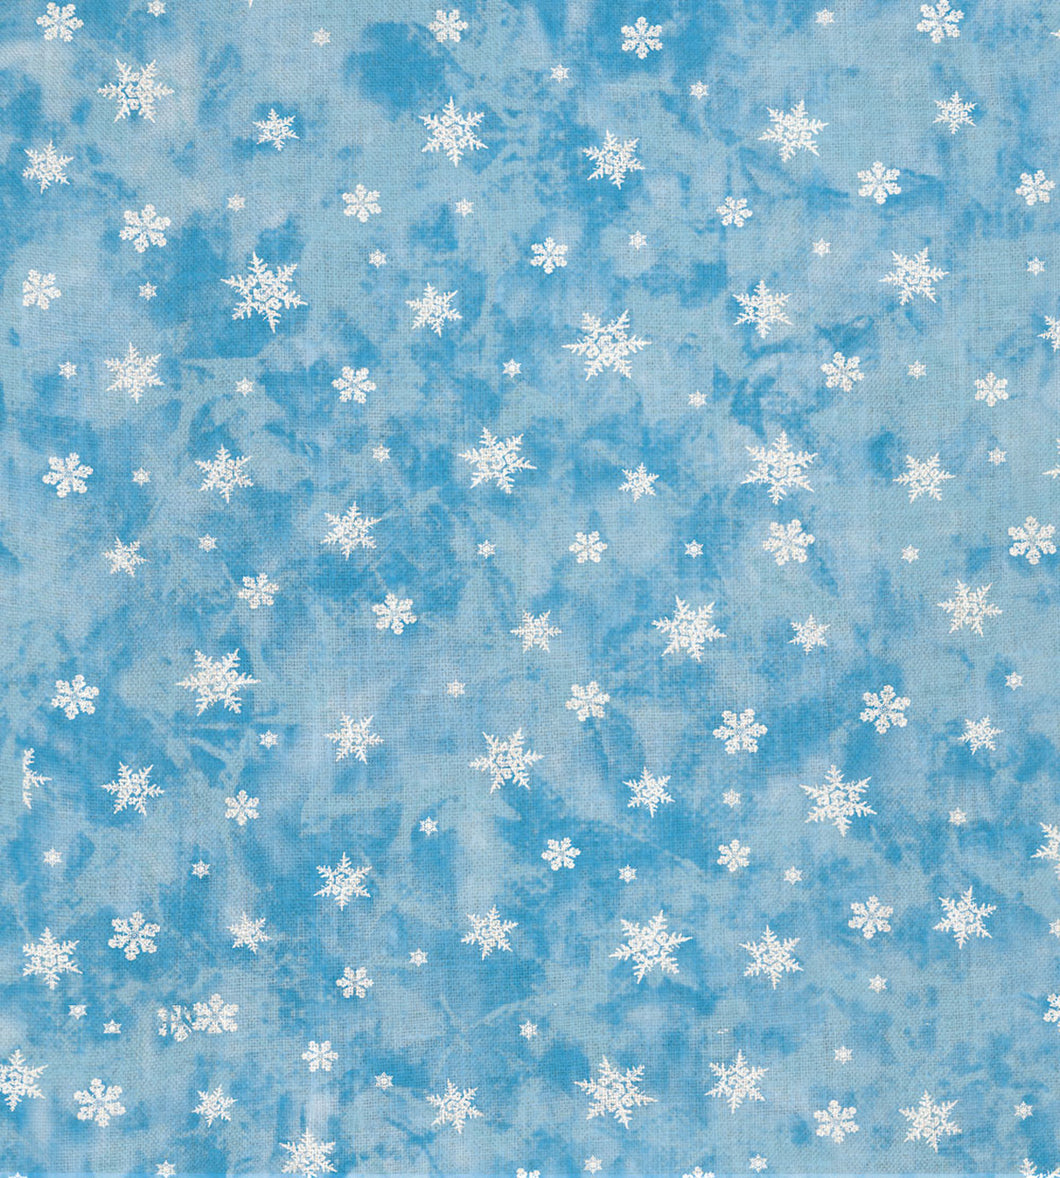 Cross Stitch Cloth - Fabric Flair 16 Count Aida - Blue Classic Snowflake 18 x 20